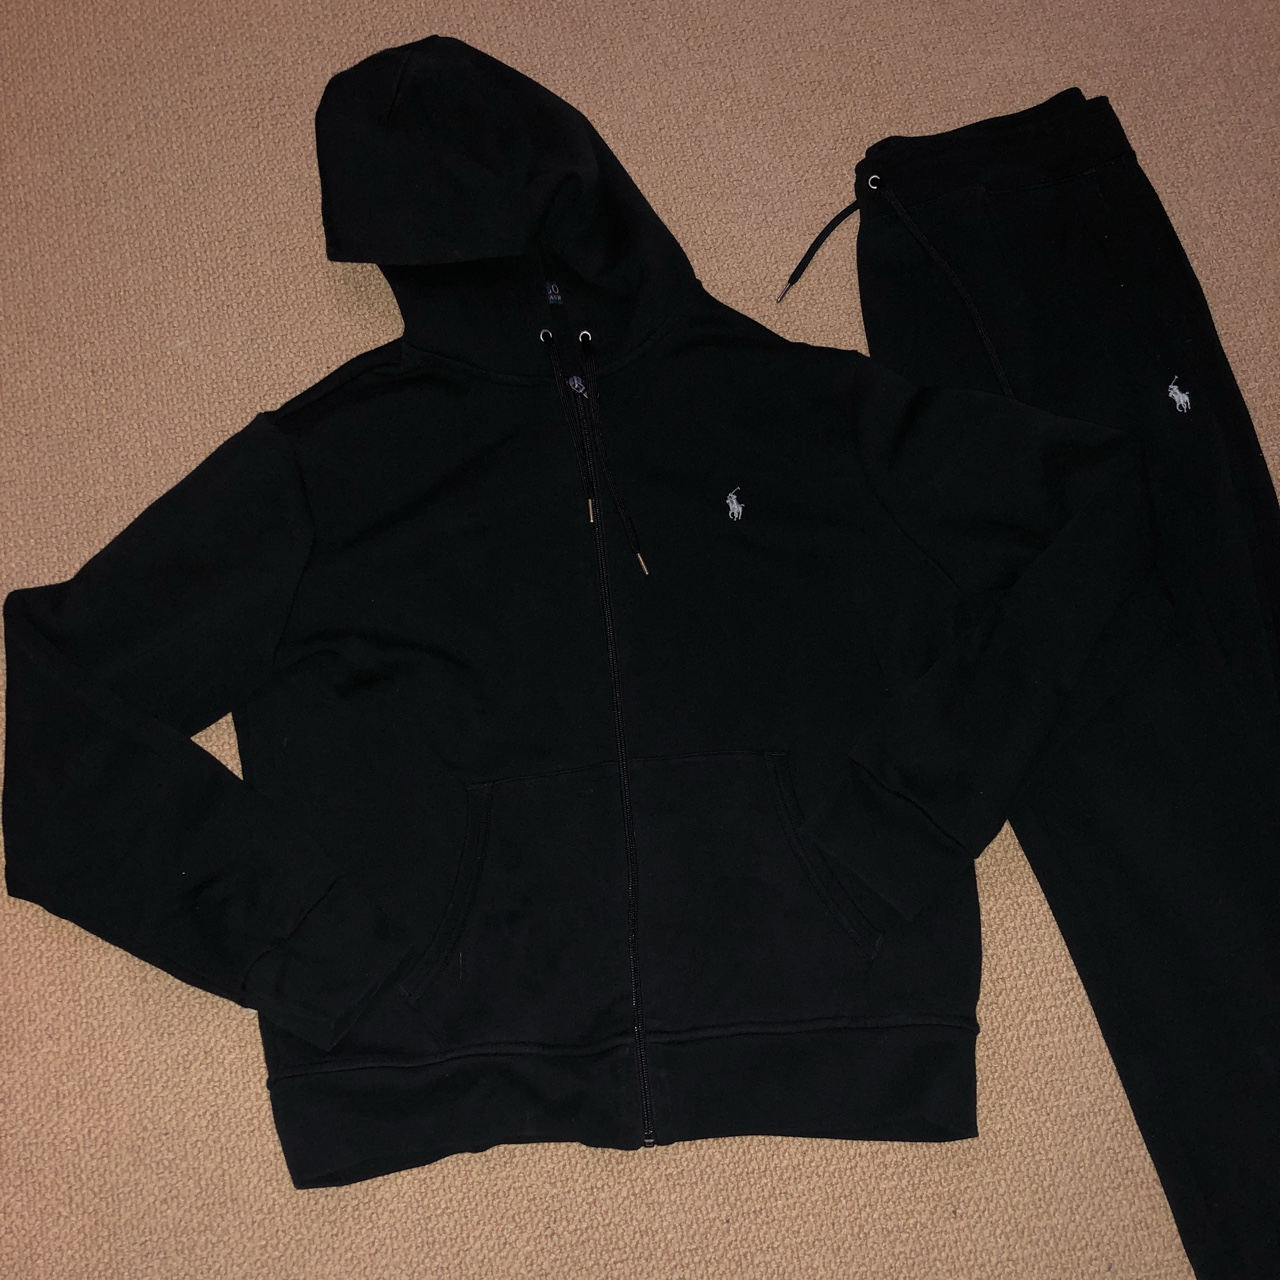 New style polo Ralph Lauren tracksuit size large in Depop